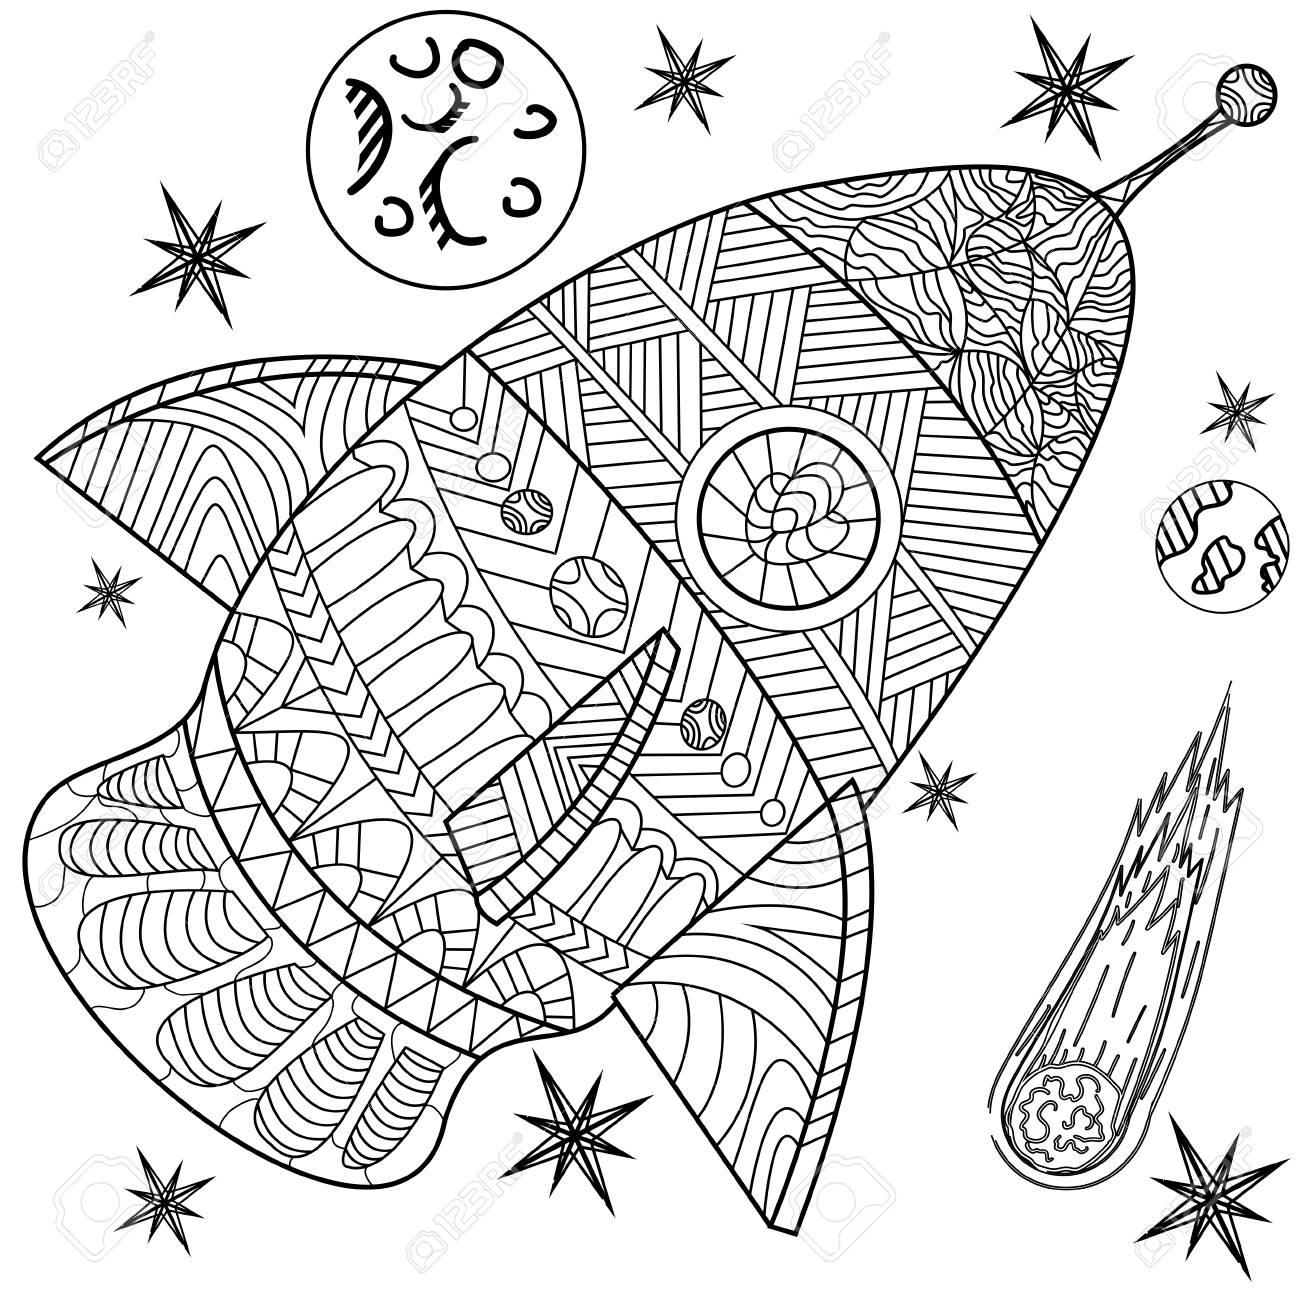 Space Coloring Book Line Art Design Vector Illustration. Separate ...